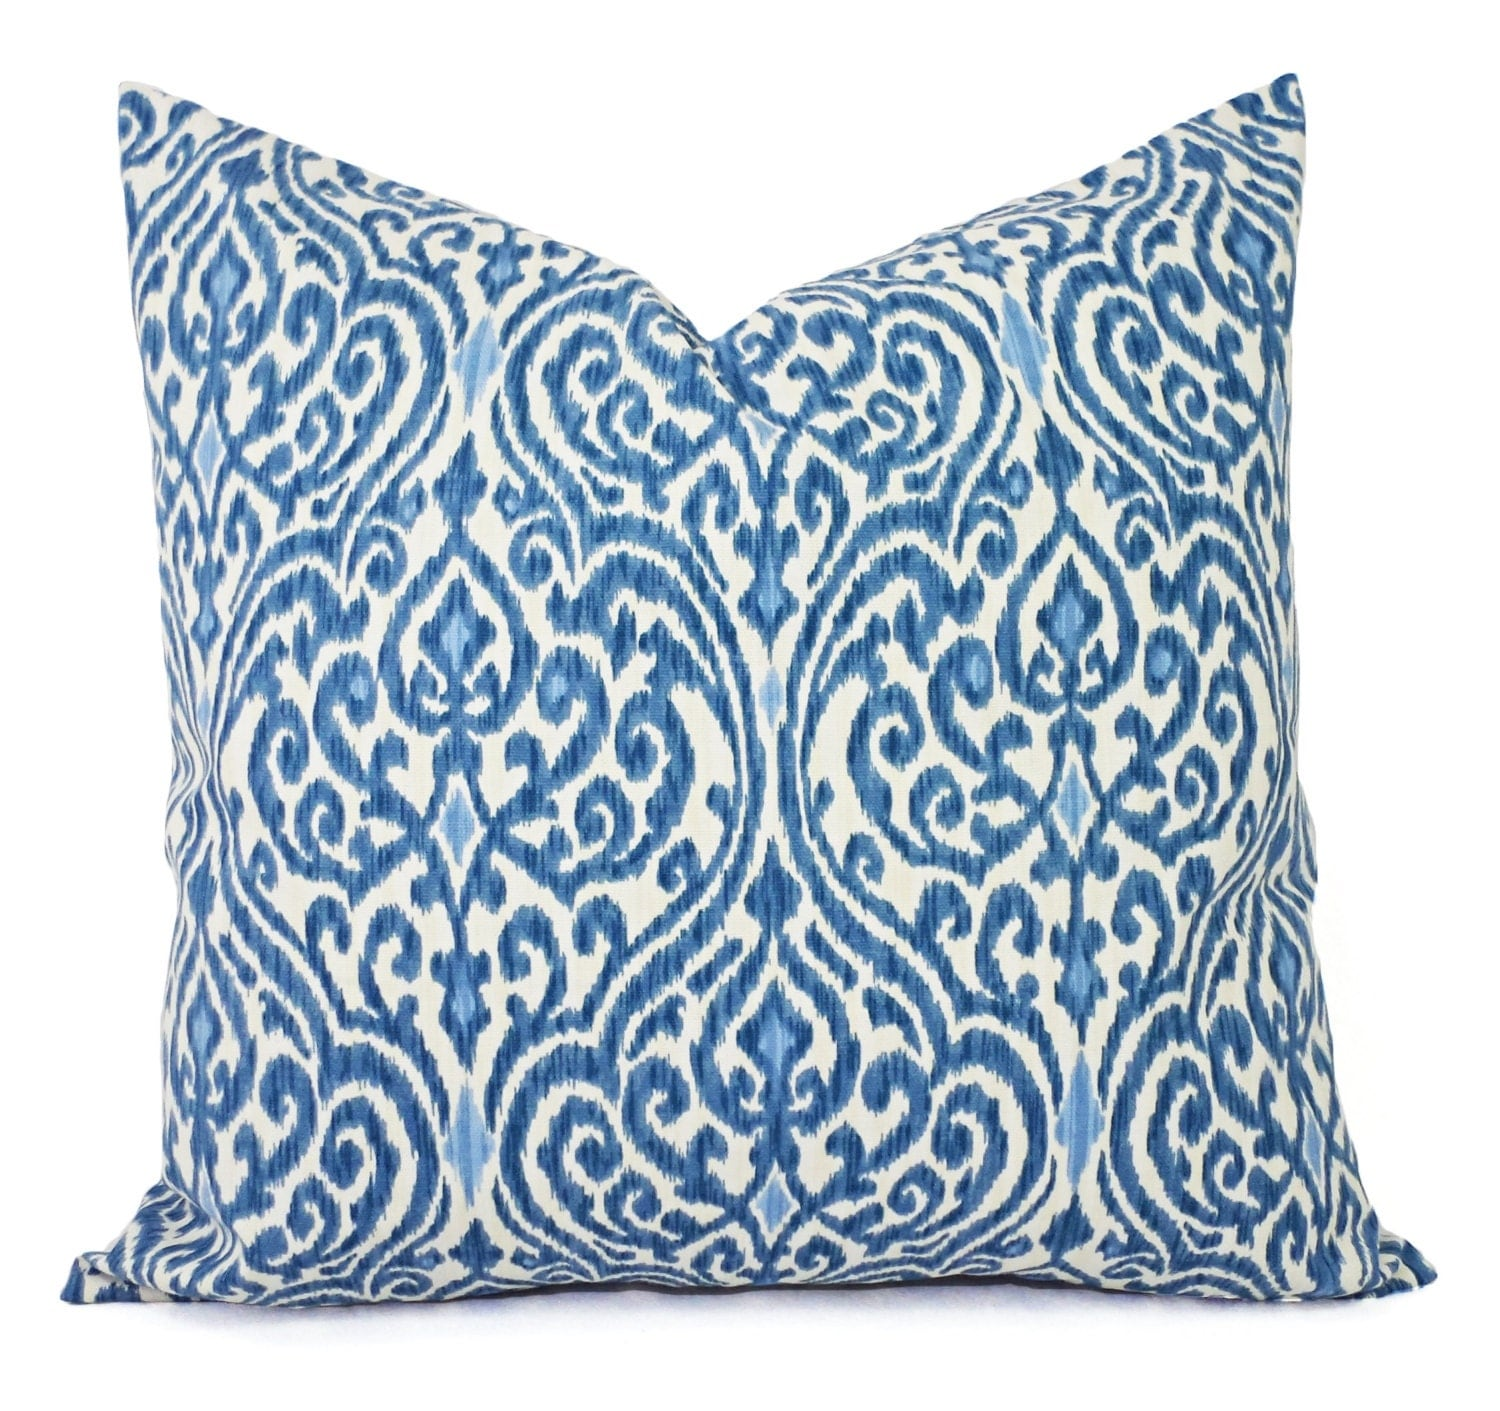 Decorative Pillow Wraps : Two Decorative Throw Pillow Covers Blue and Beige Ikat